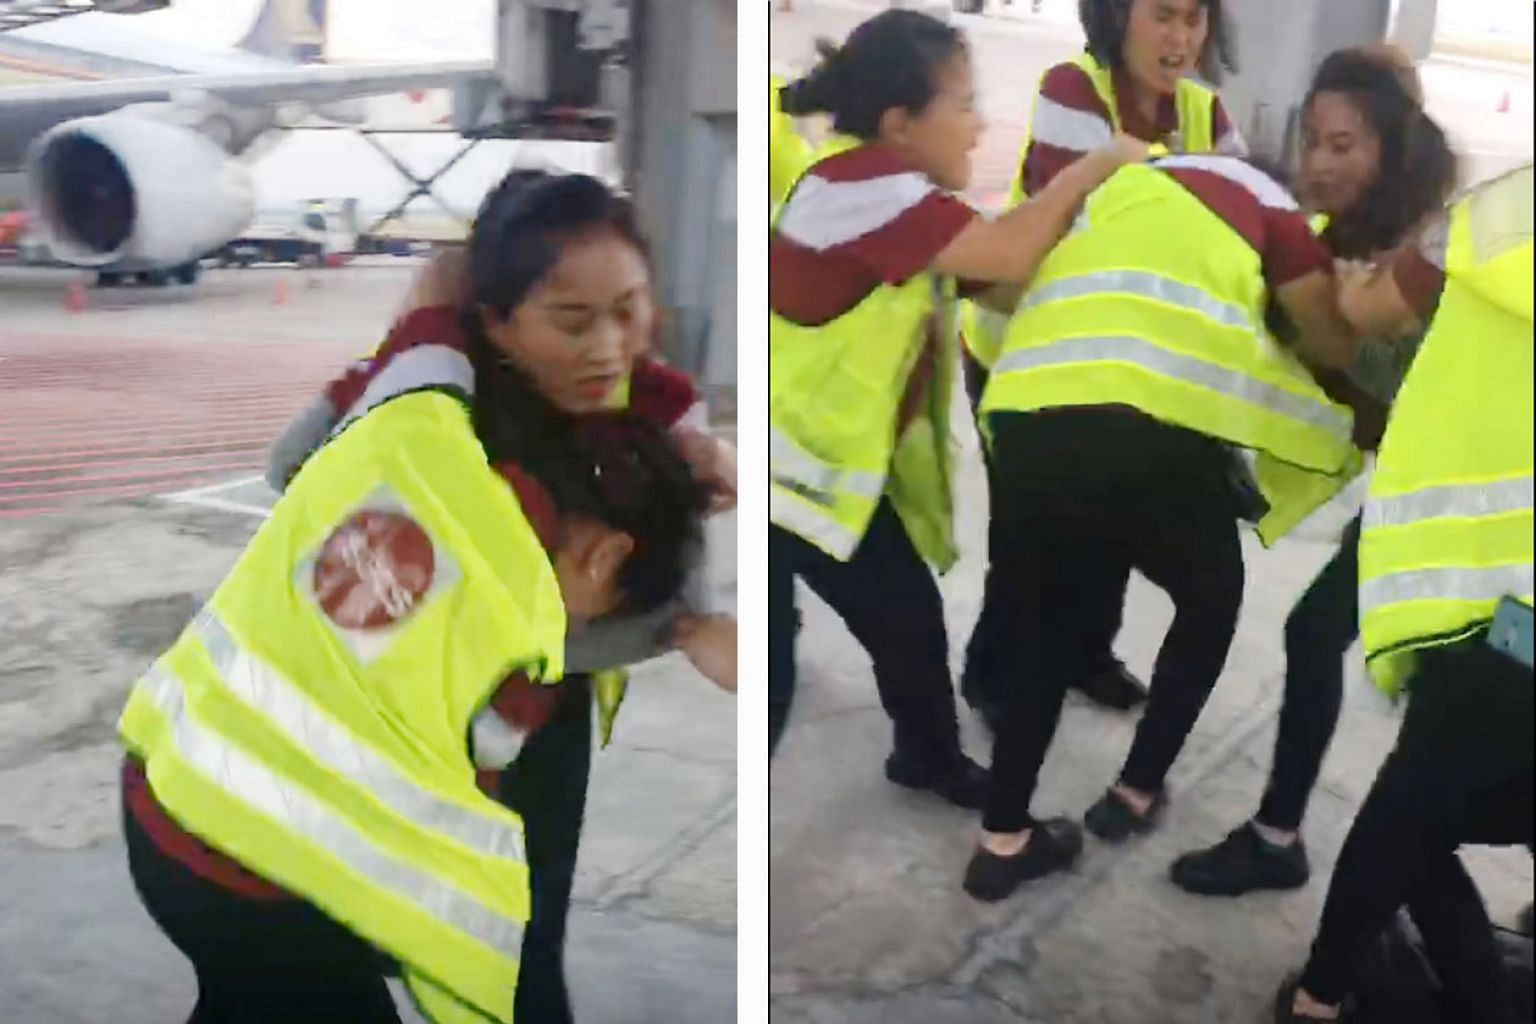 Ground-handling firm Sats is investigating a fight between two employees on the tarmac at Changi Airport. In a video that The Straits Times obtained, the two women are seen hitting each other. At least five other staff members can be seen trying to b